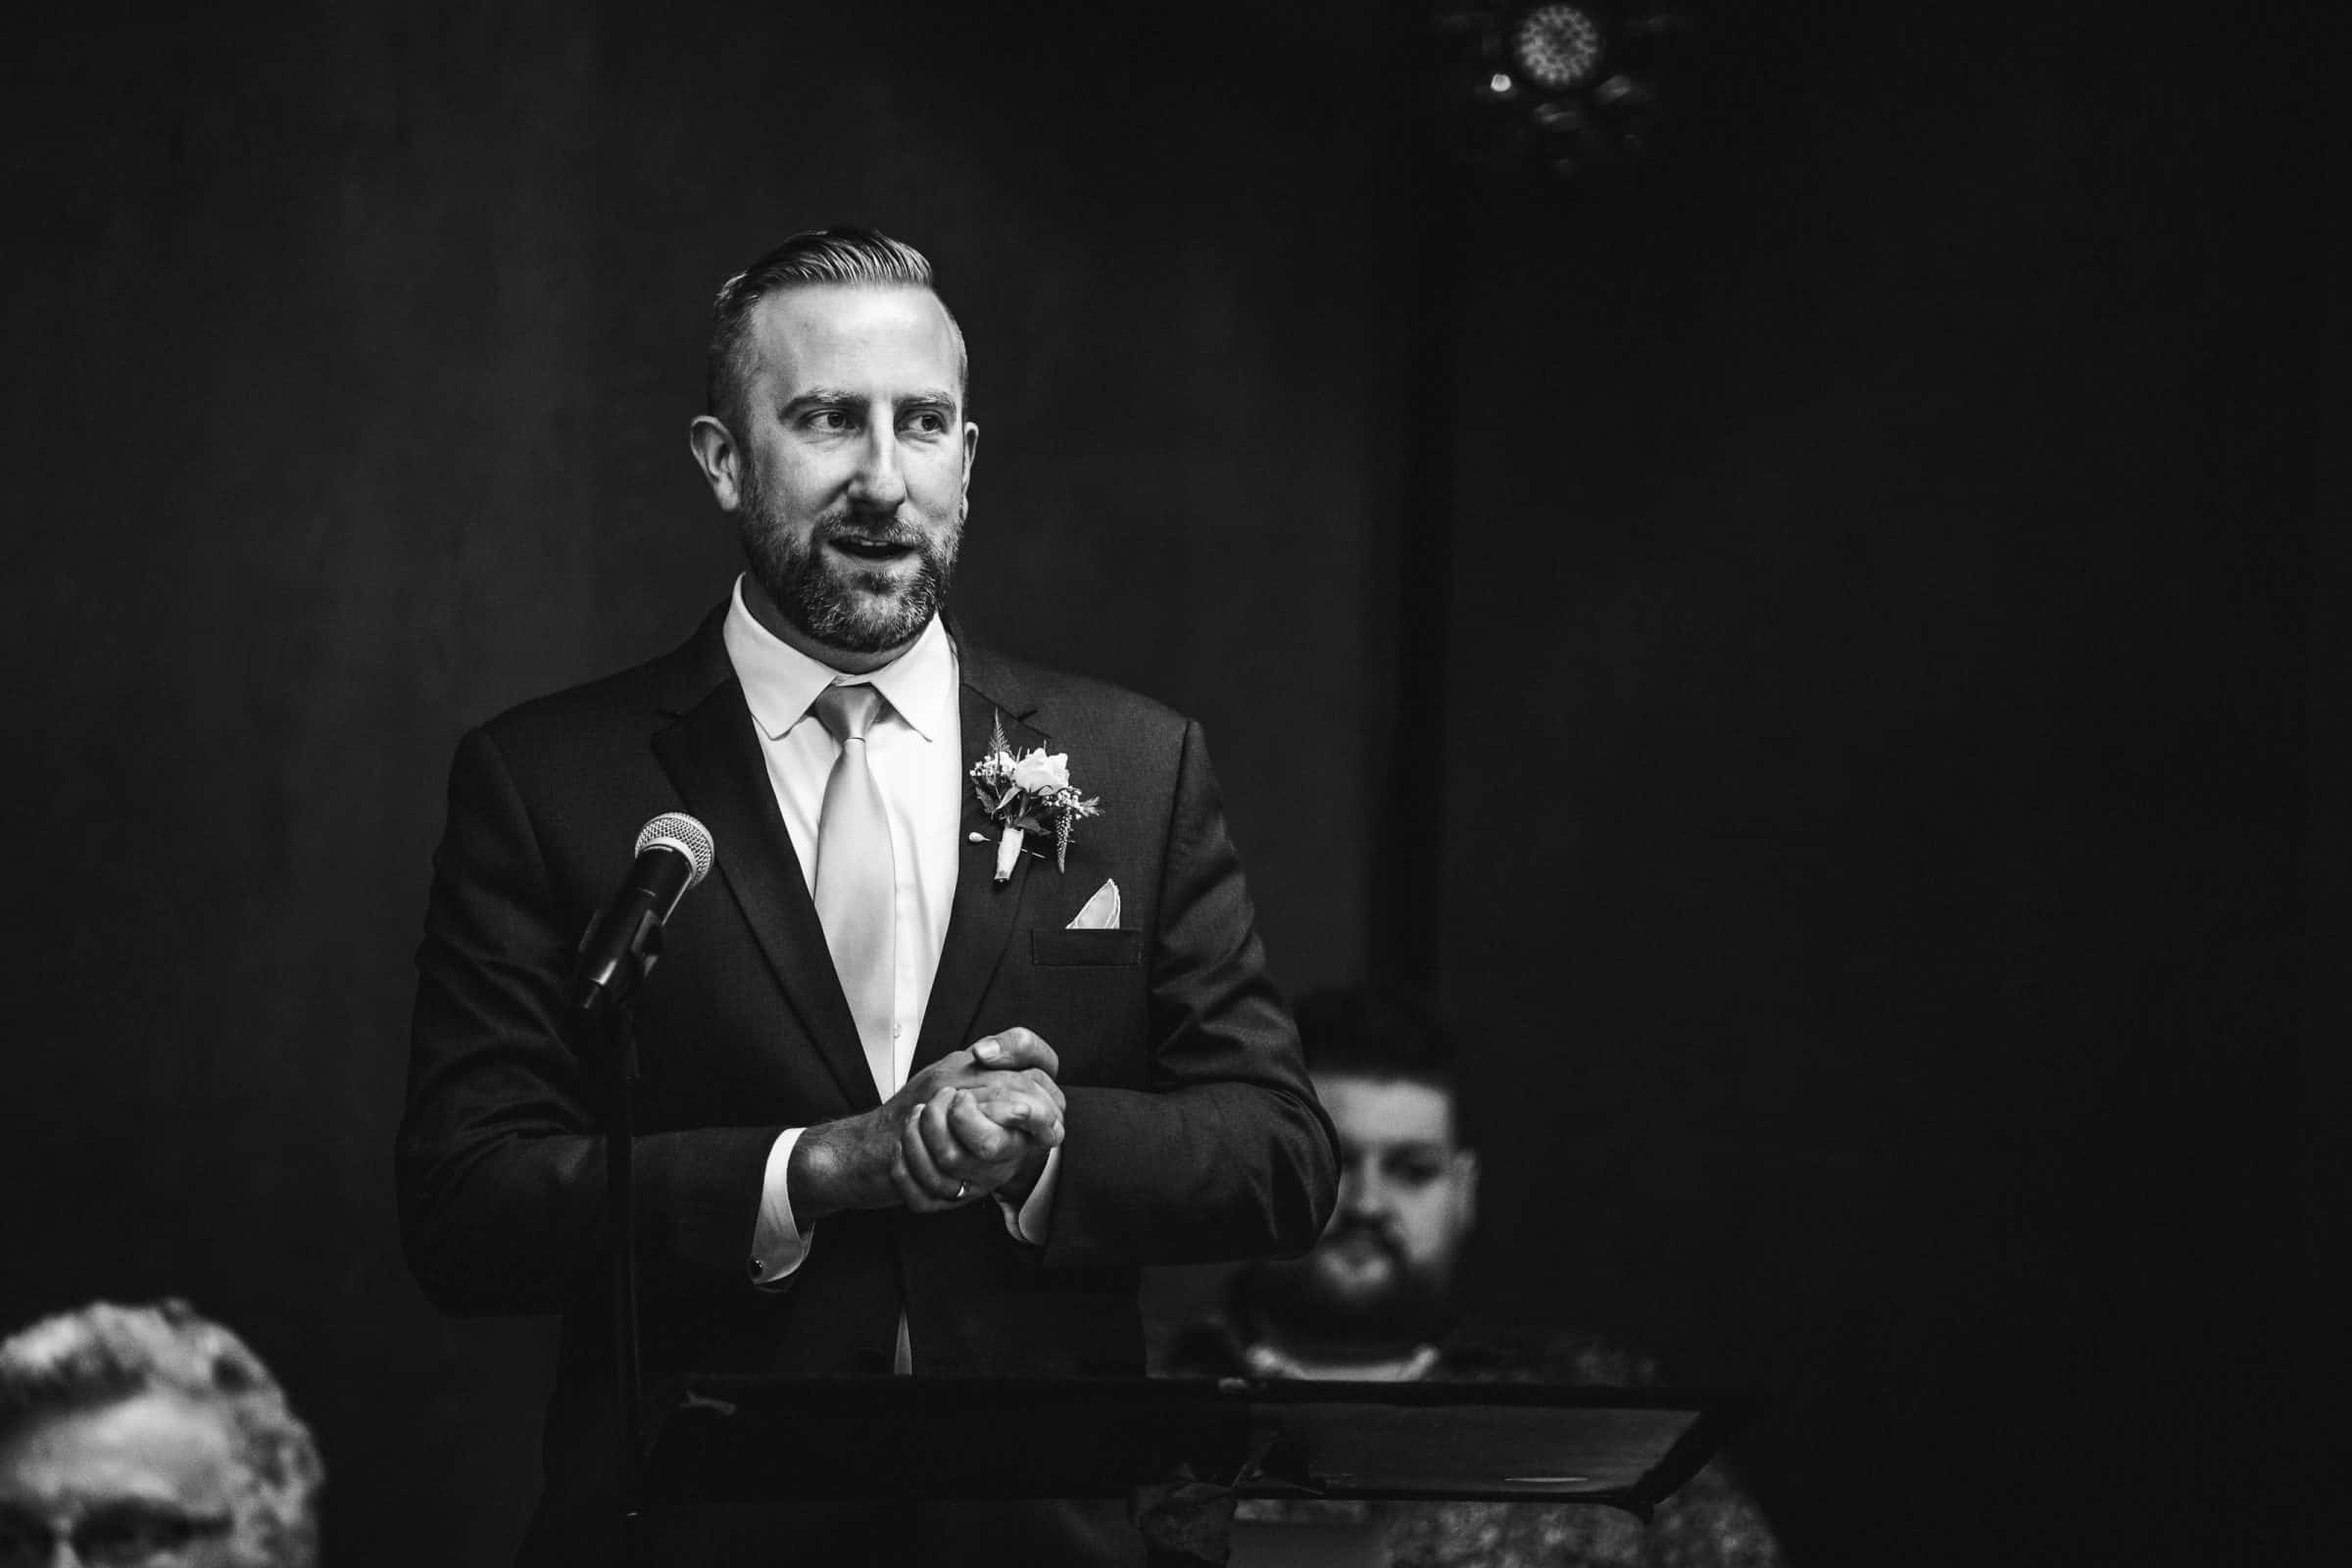 black and white image of groomsman giving a speech